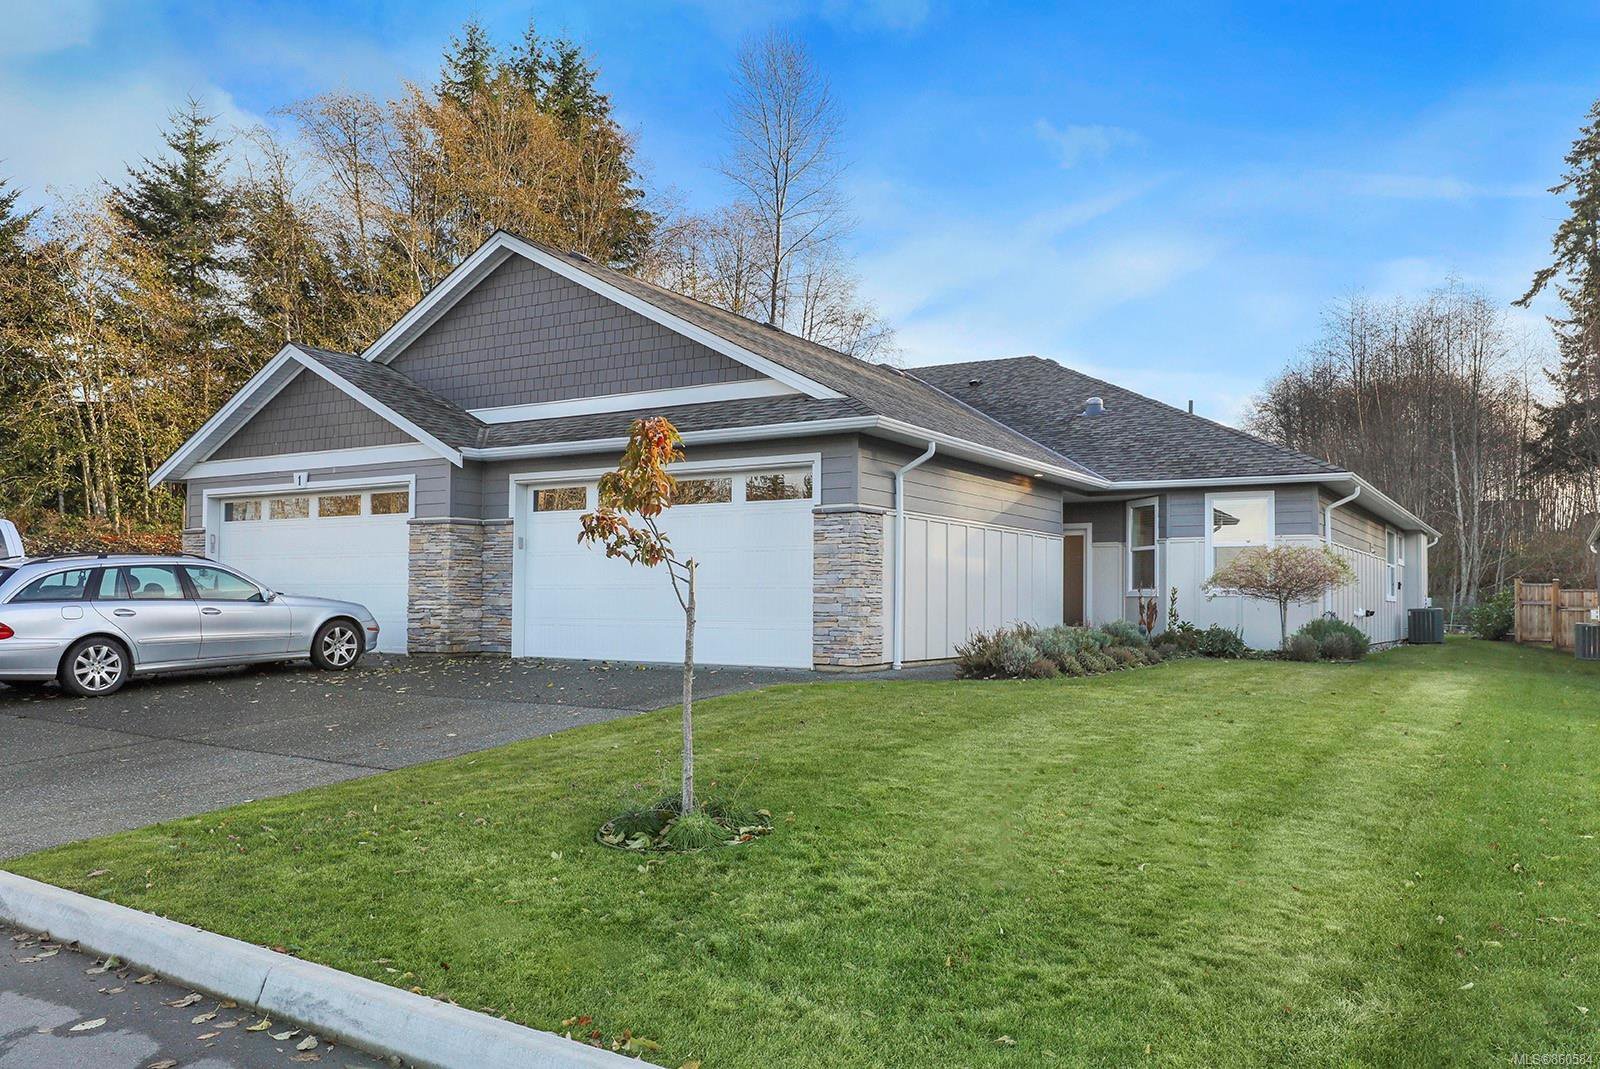 Main Photo: 3 2000 Treelane Rd in : CR Campbell River West Half Duplex for sale (Campbell River)  : MLS®# 860584